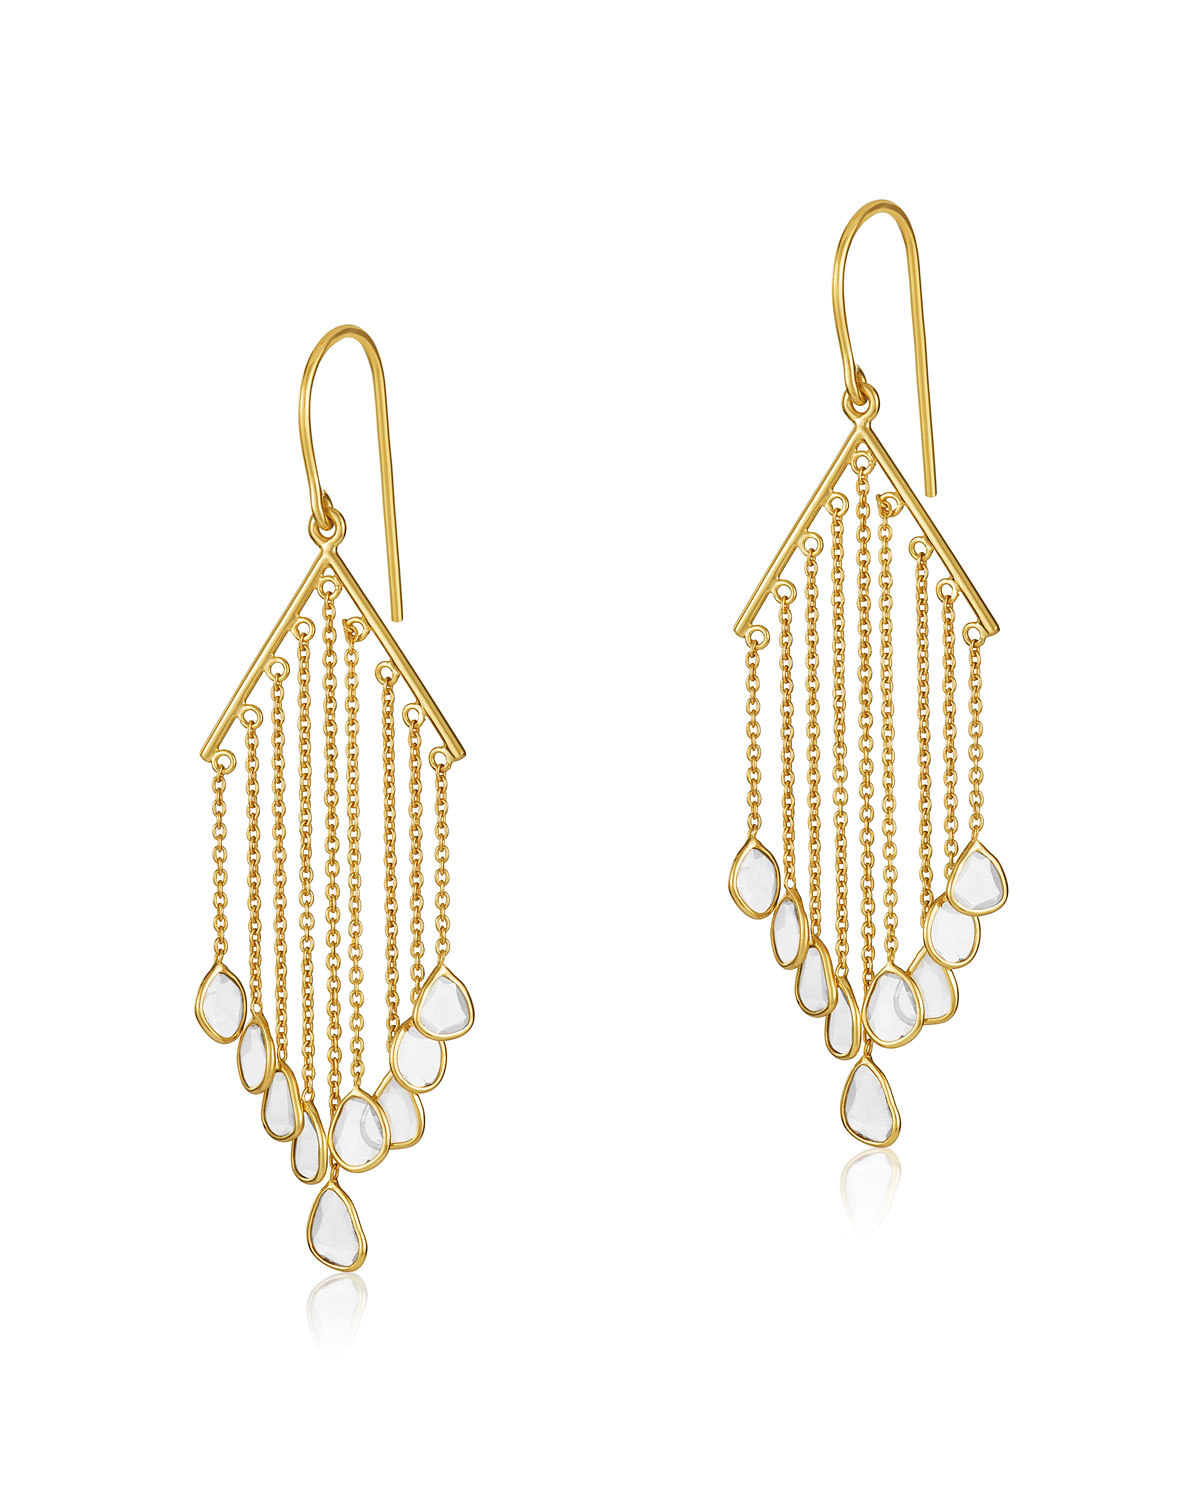 LEGEND AMRAPALI Polki Diamond Slice V-Bar Drop Earrings